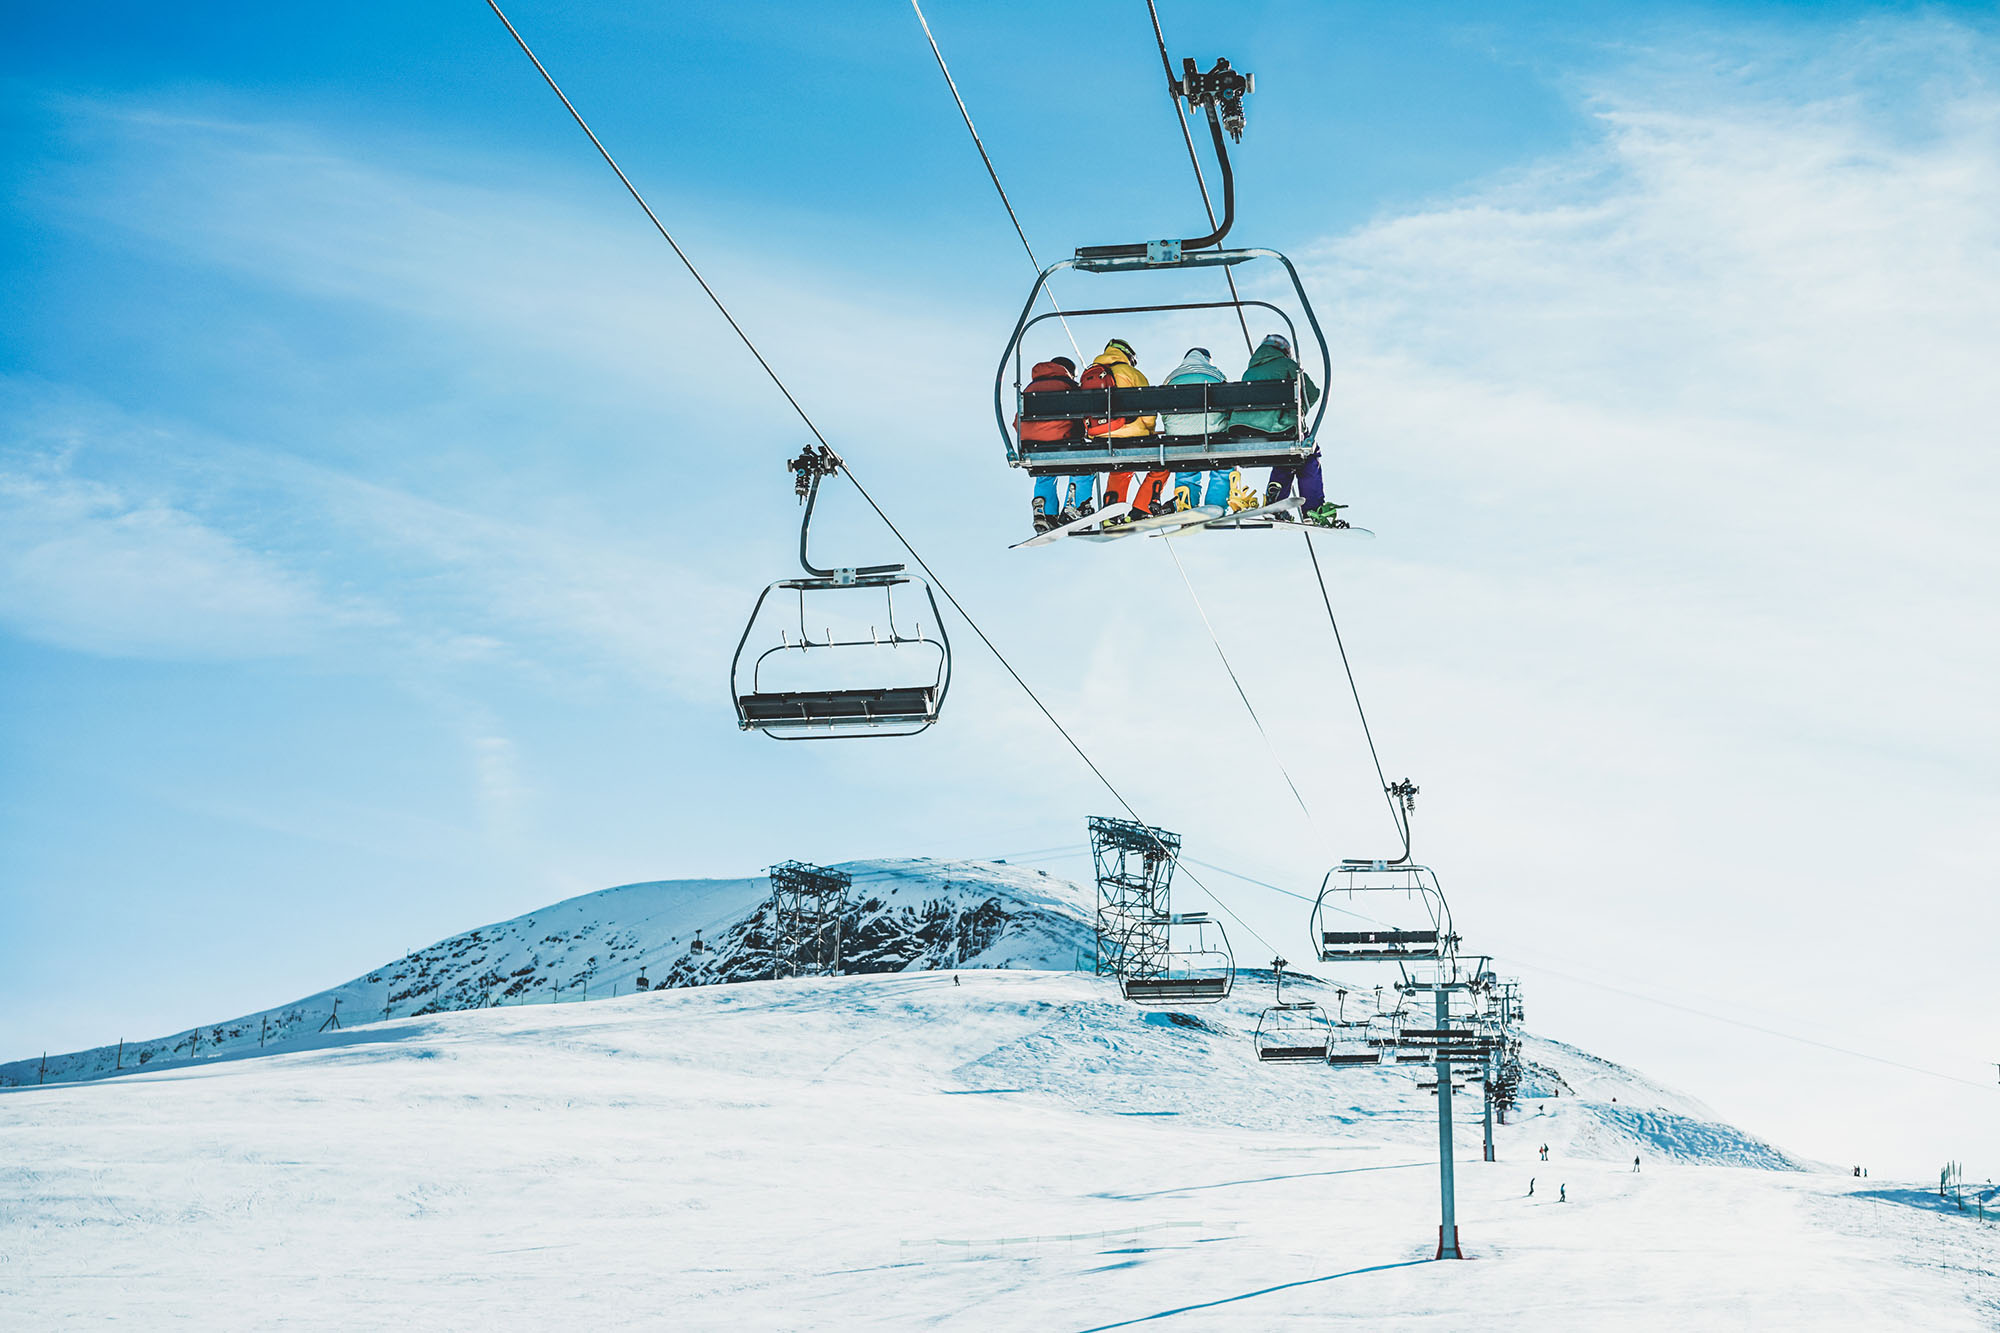 accidents at ski resort lift injuried public liability claims solicitors Aberdeen